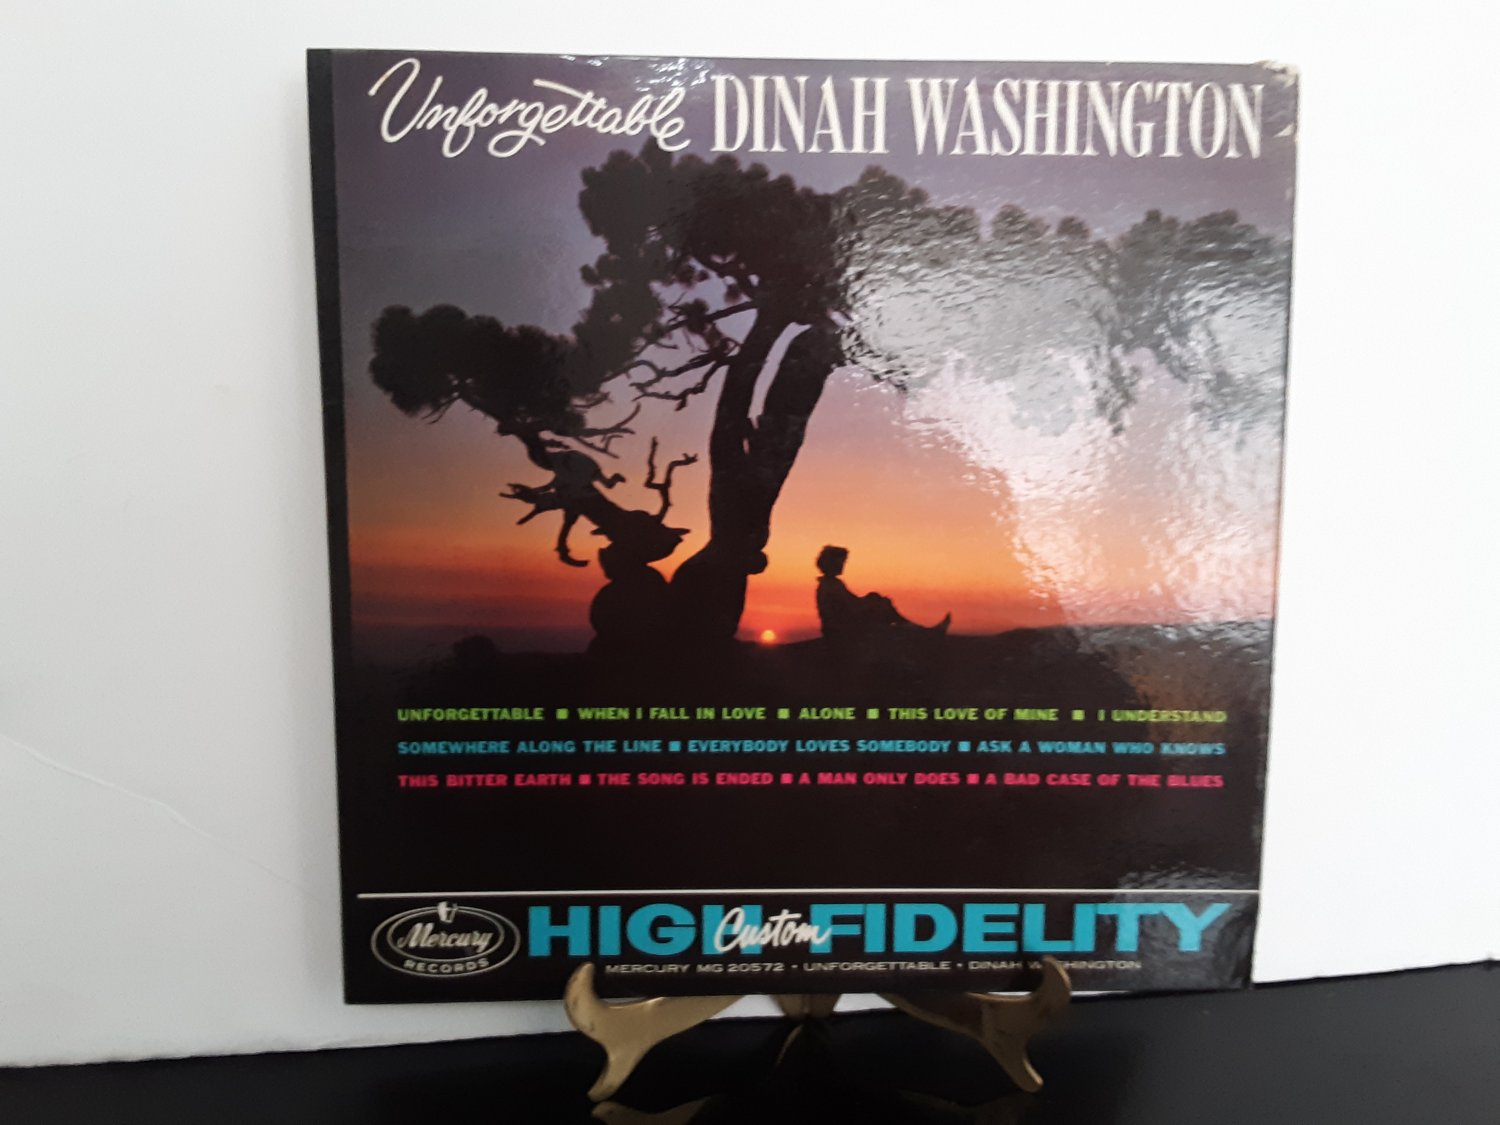 Dinah Washington - Unforgettable - Circa 1961